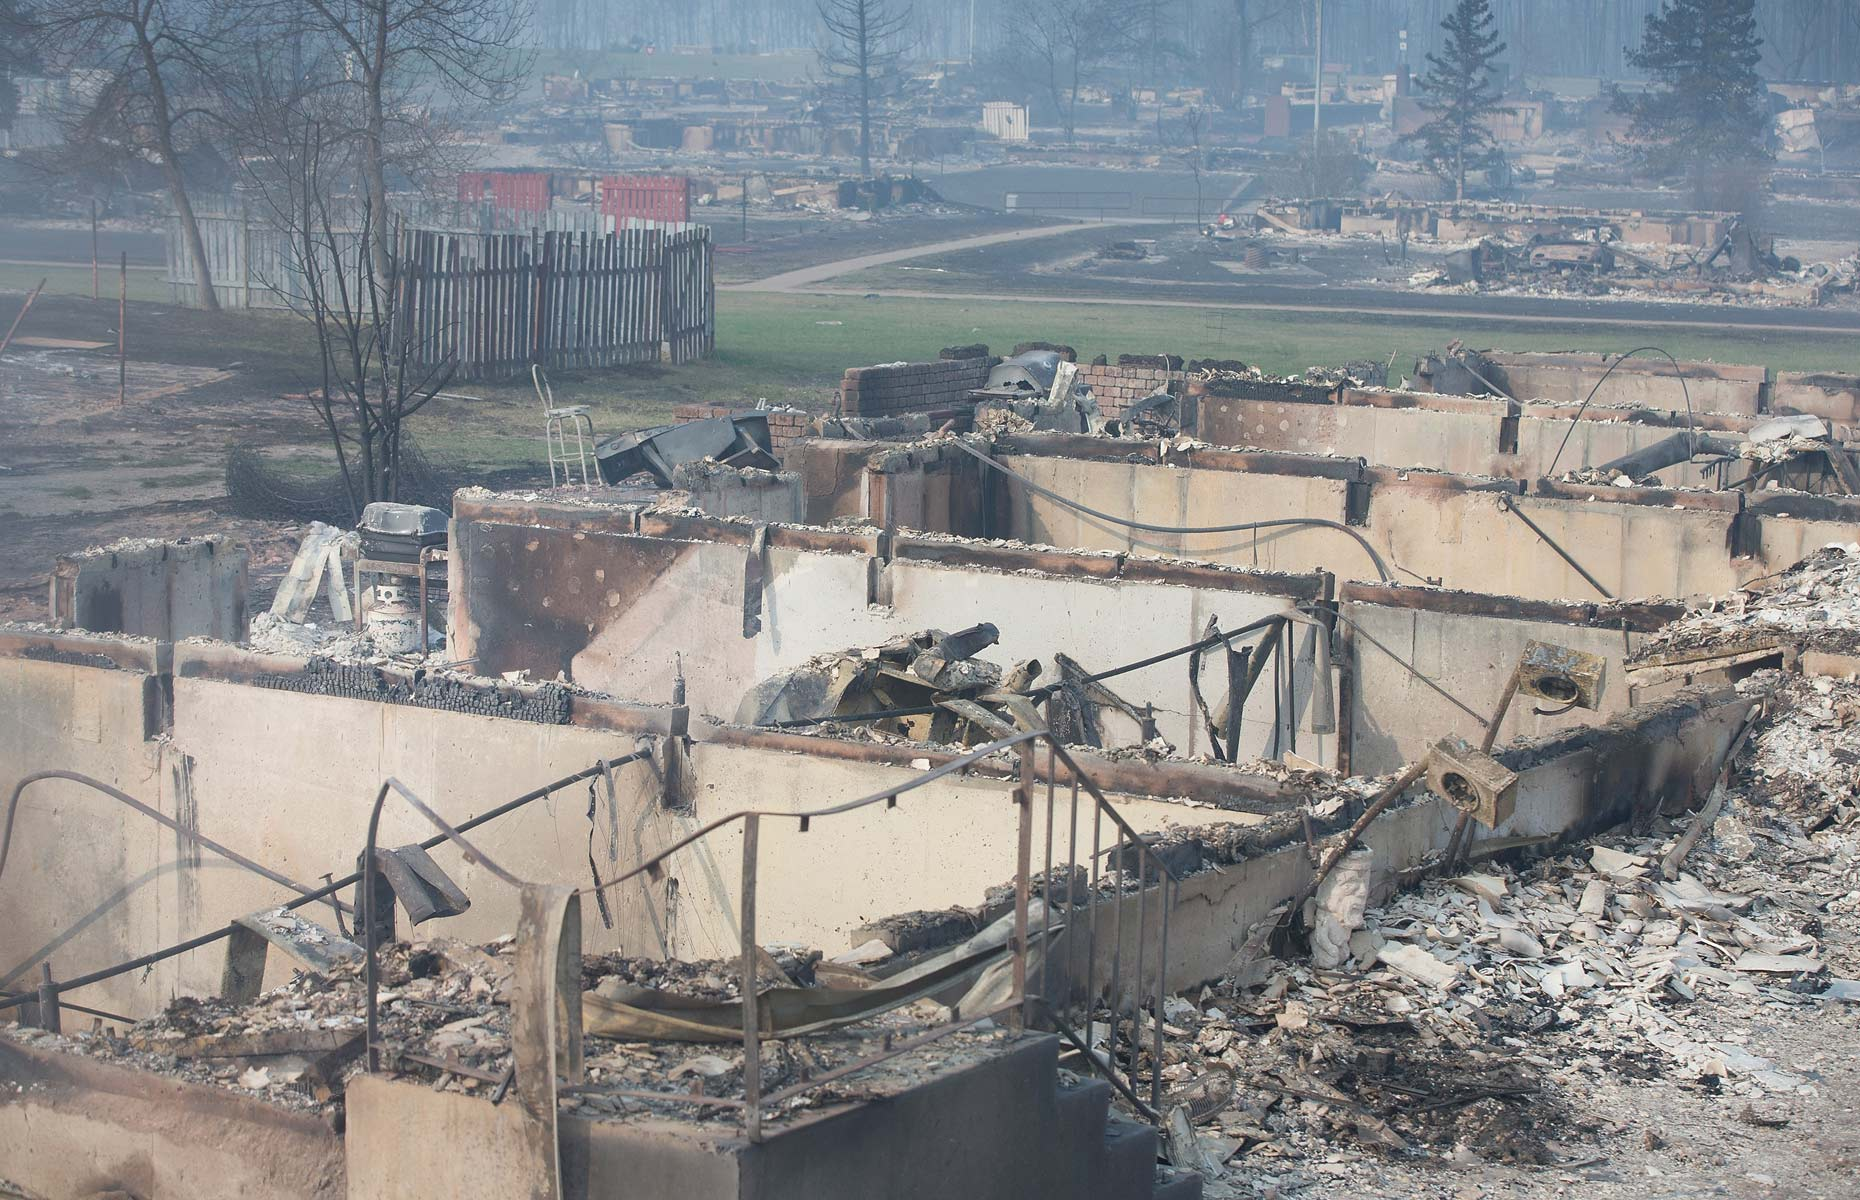 Home foundations are all that remain in a residential neighborhood destroyed by a wildfire on May 6, 2016 in Fort McMurray, Alta.